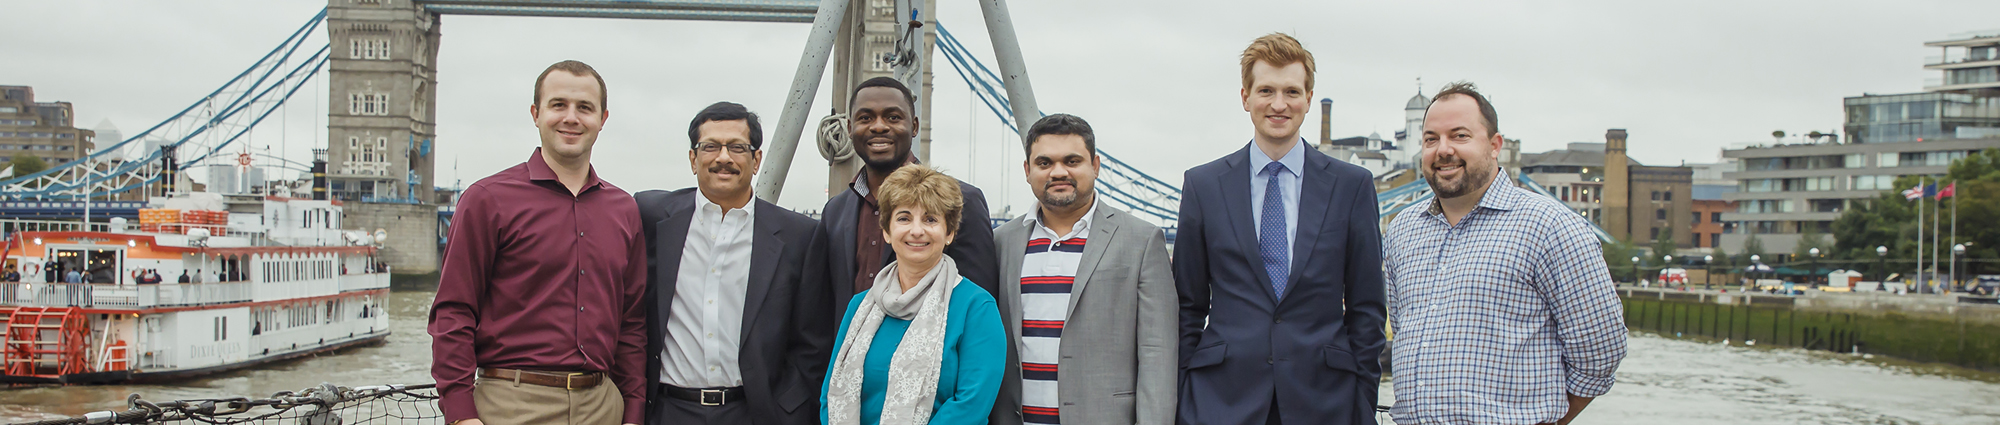 EMBA group photo in London